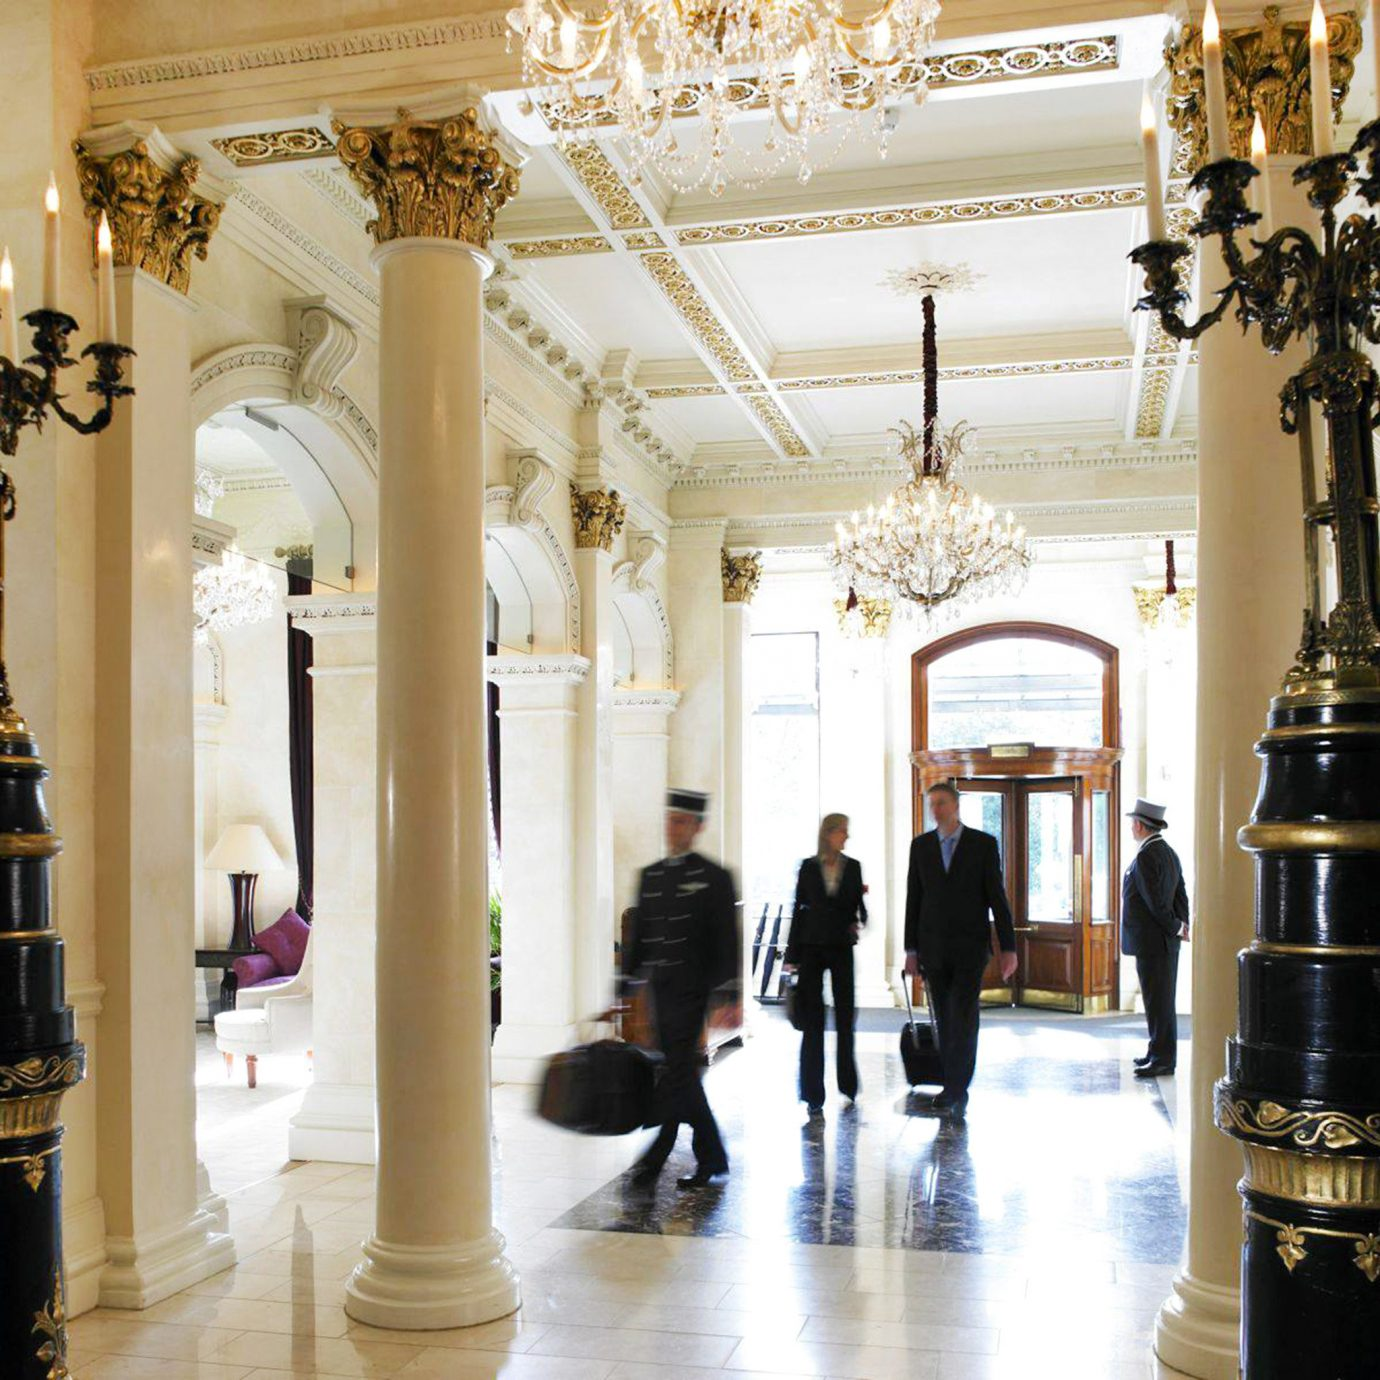 Classic Elegant Lobby Luxury building aisle Boutique palace tourist attraction column hall museum retail arcade altar